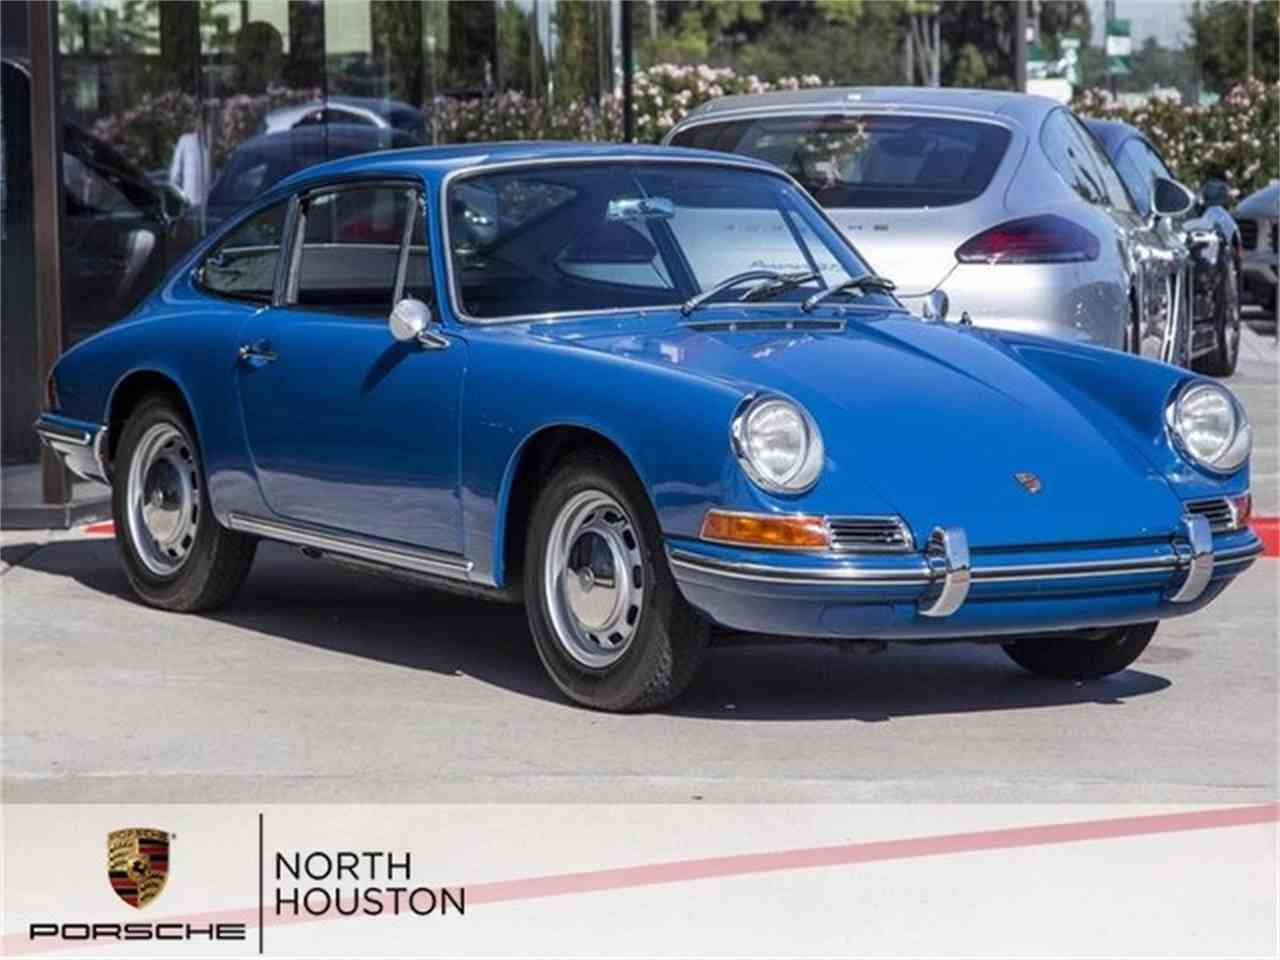 Cars For Sale In Houston: 1966 Porsche 912 For Sale